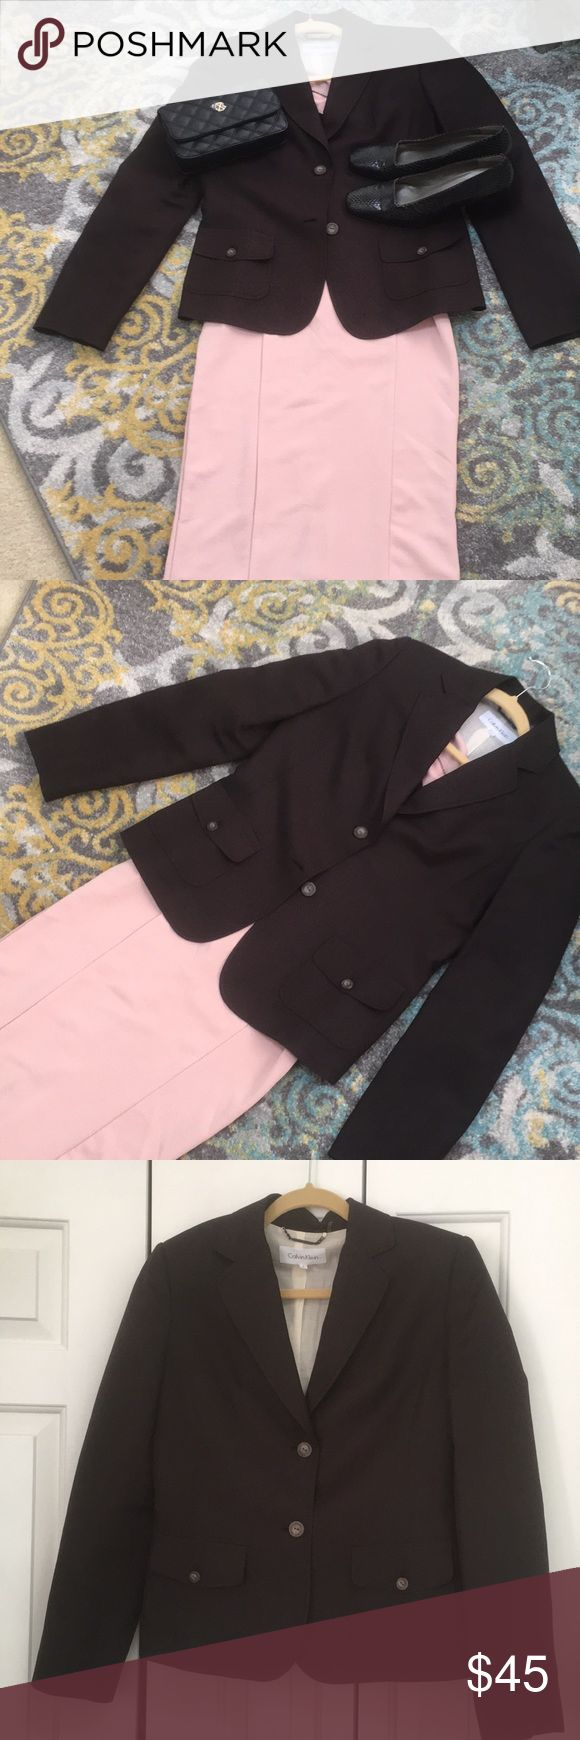 🌸Calvin Klein Linen Jacket 🌸Size 6 Perfect Spring Jacket. 🌺 Size 6 🌸 Has a cotton lining. Nicely tailored 🌸 Worn twice.🌸 Freshly dry cleaning 🌸 Calvin Klein Jackets & Coats Blazers